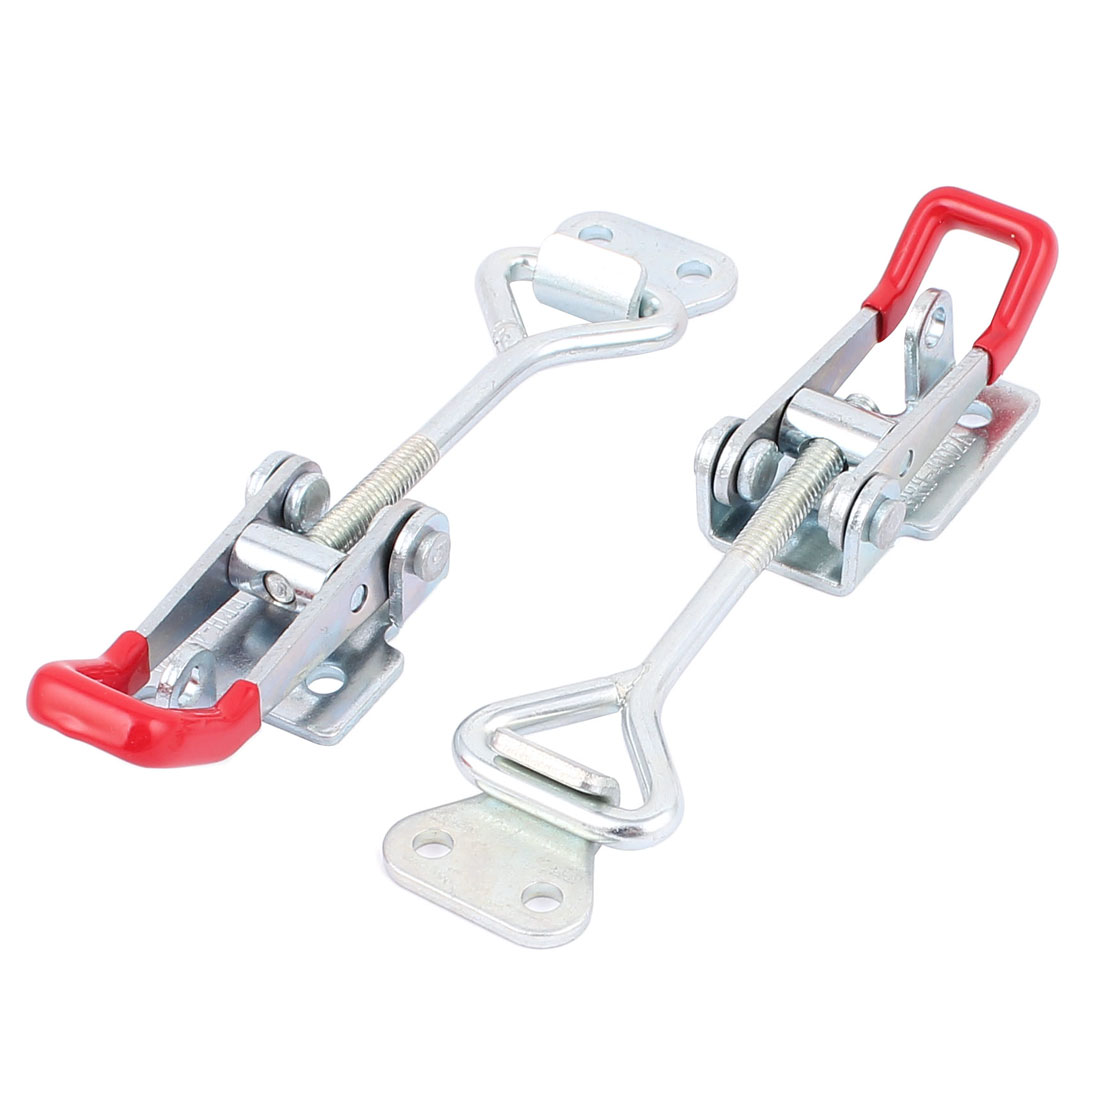 4002A 180Kg/397Lbs Holding Capacity Pull Latch Toggle Clamps 2Pcs